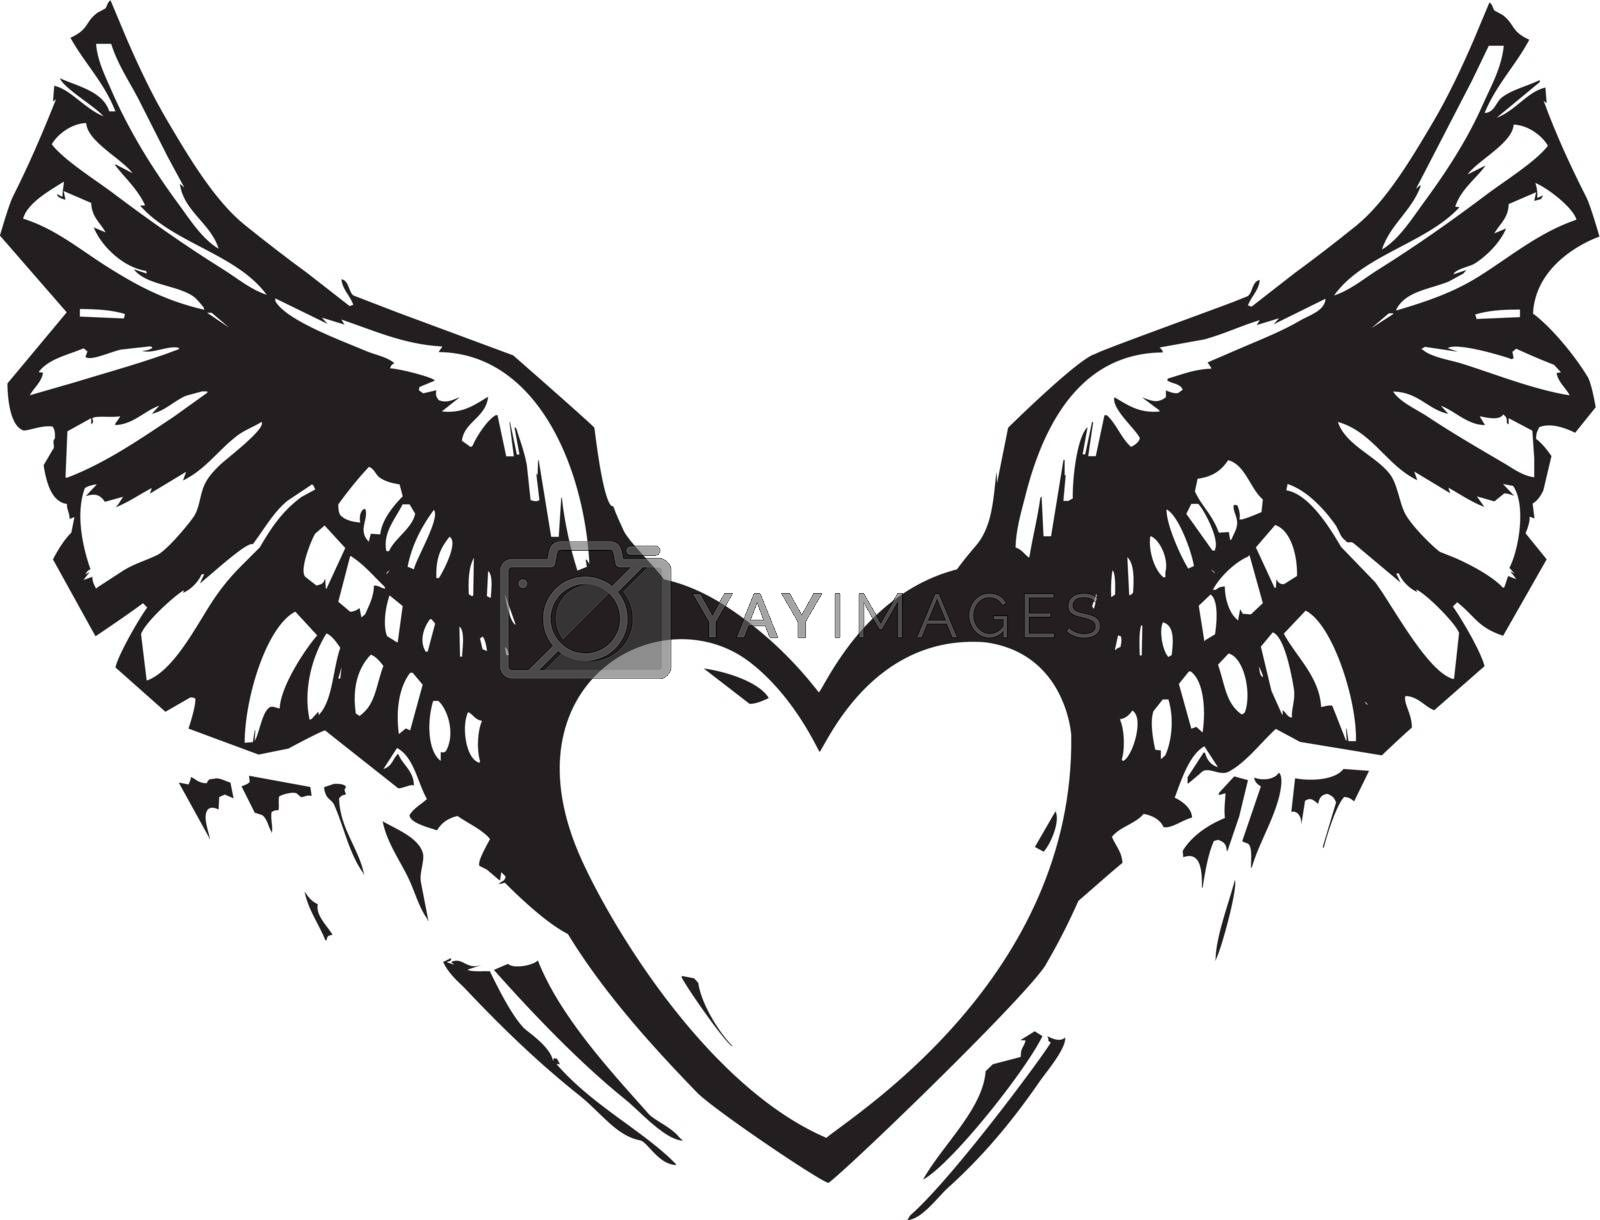 Black and White Woodcut style image of a heart with wings.